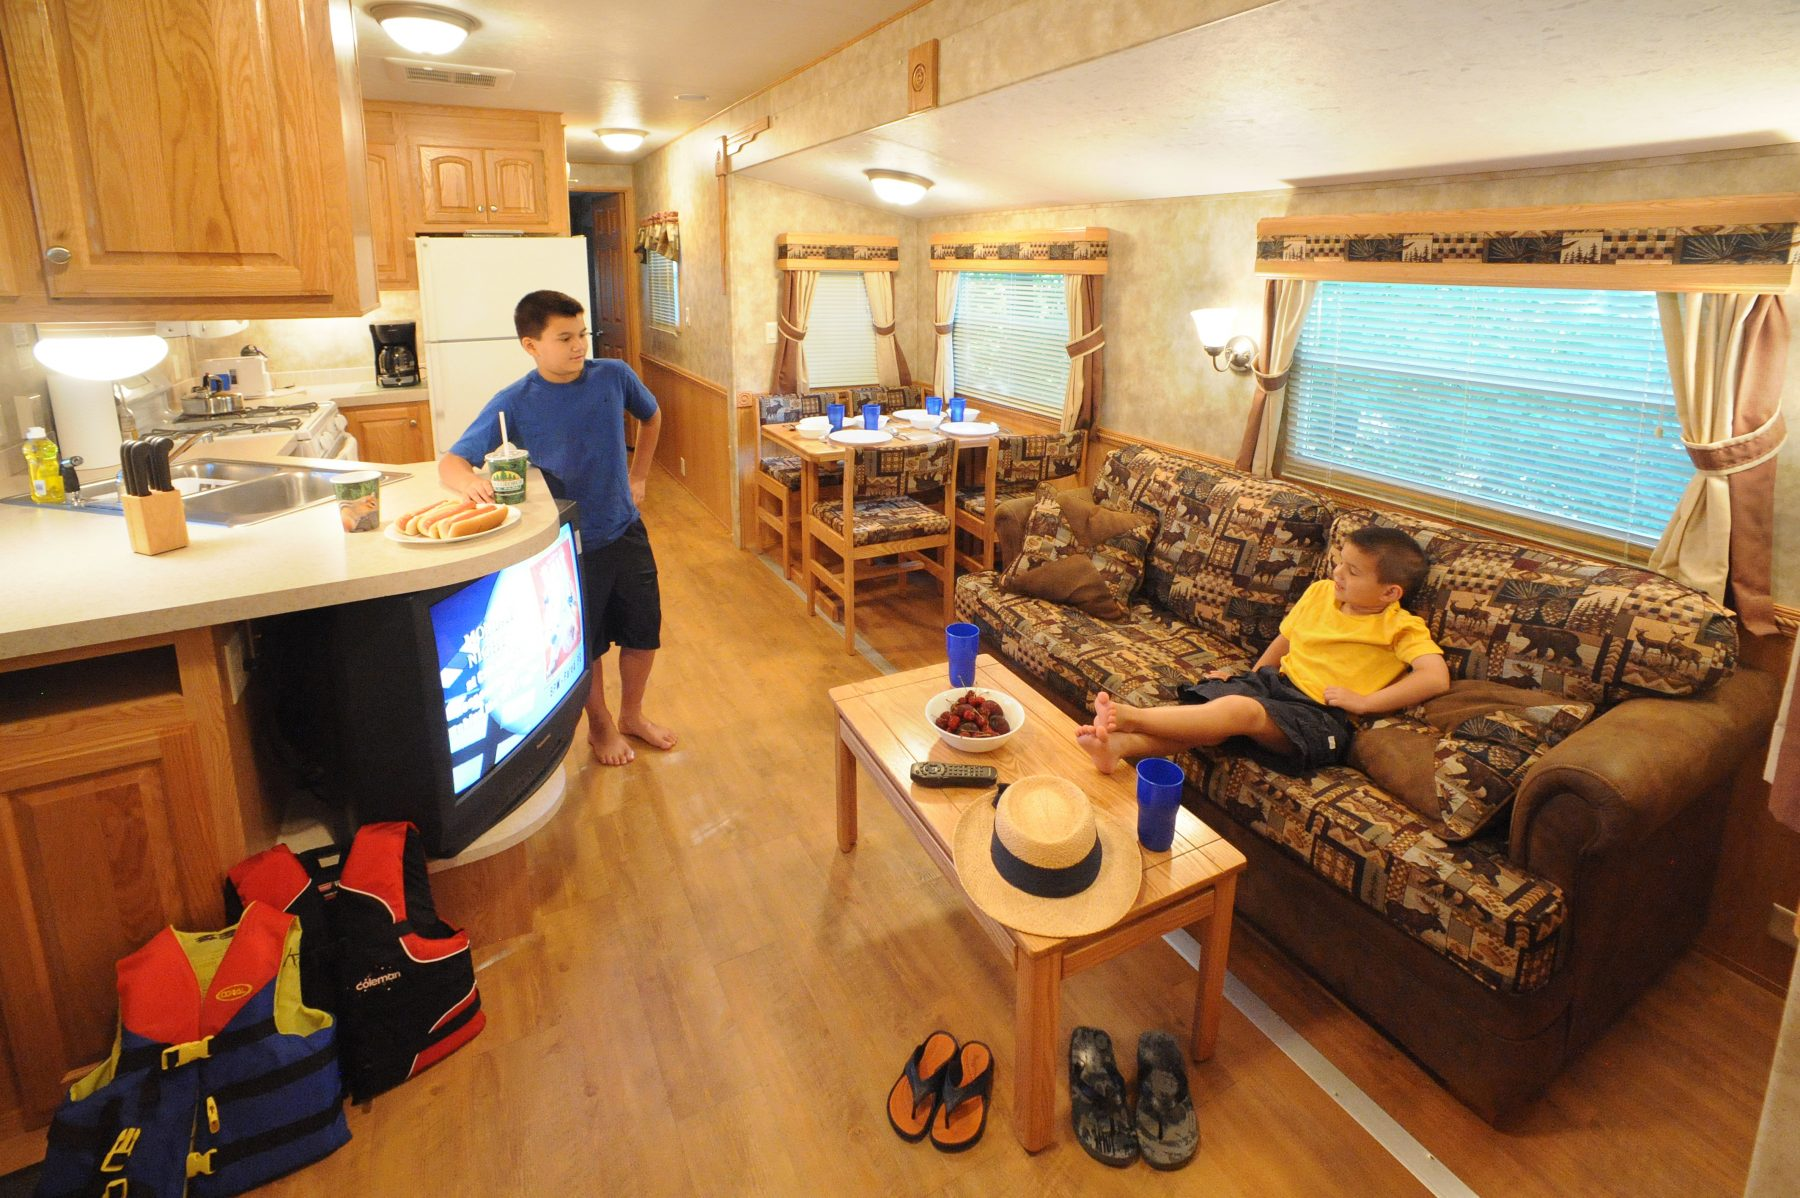 Rental units are 40 feet long with 2 bedrooms, a full bathroom & kitchenette